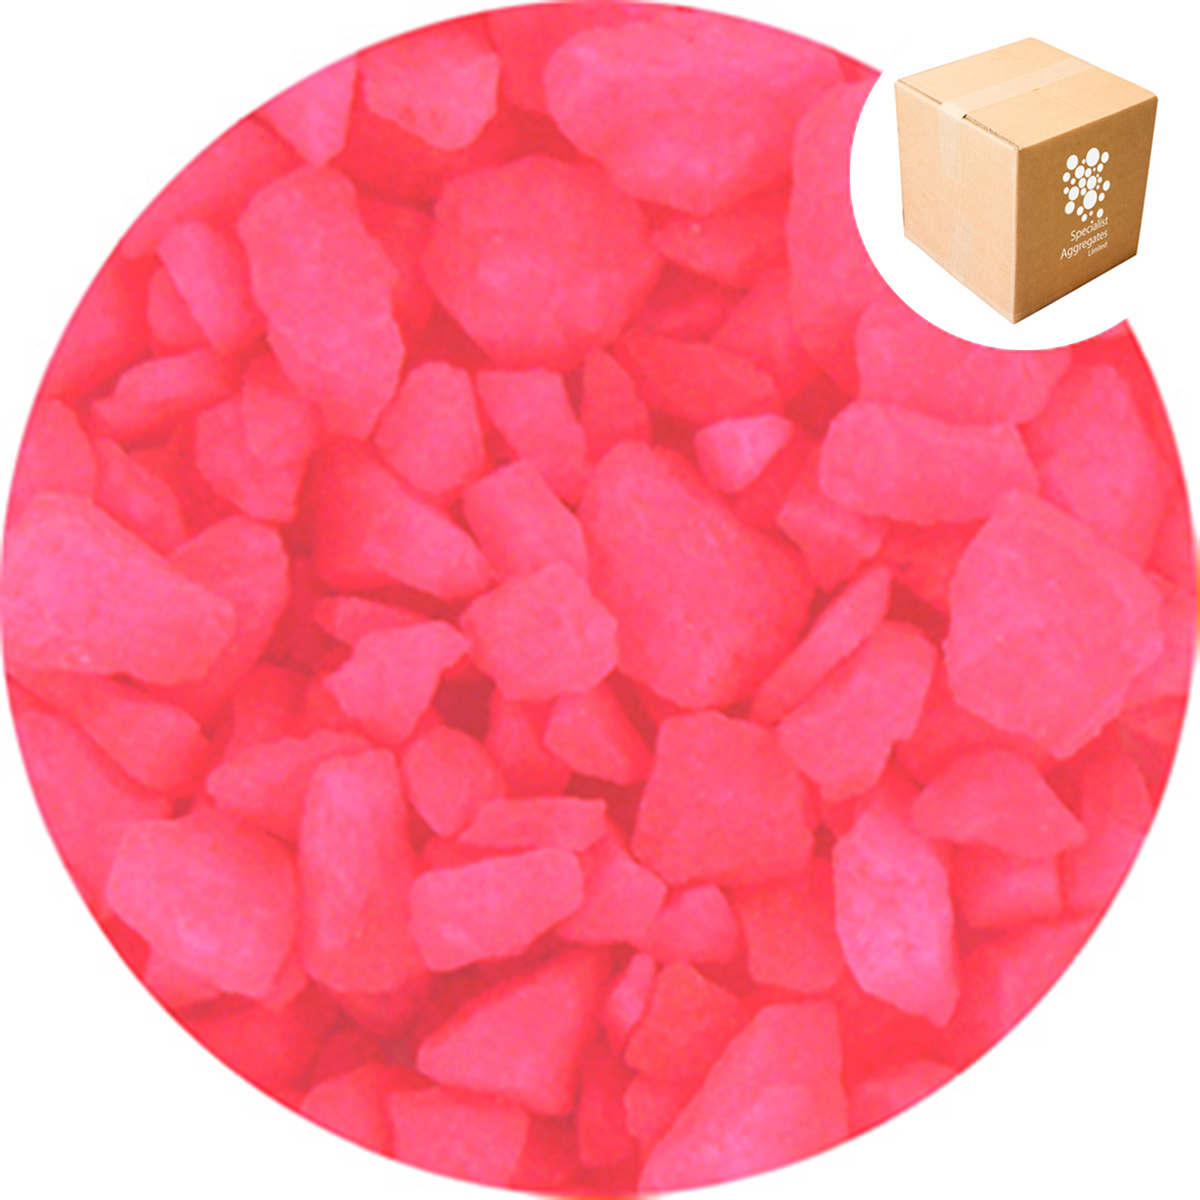 Aspen Crystal  - Day Glo - Bright Pink